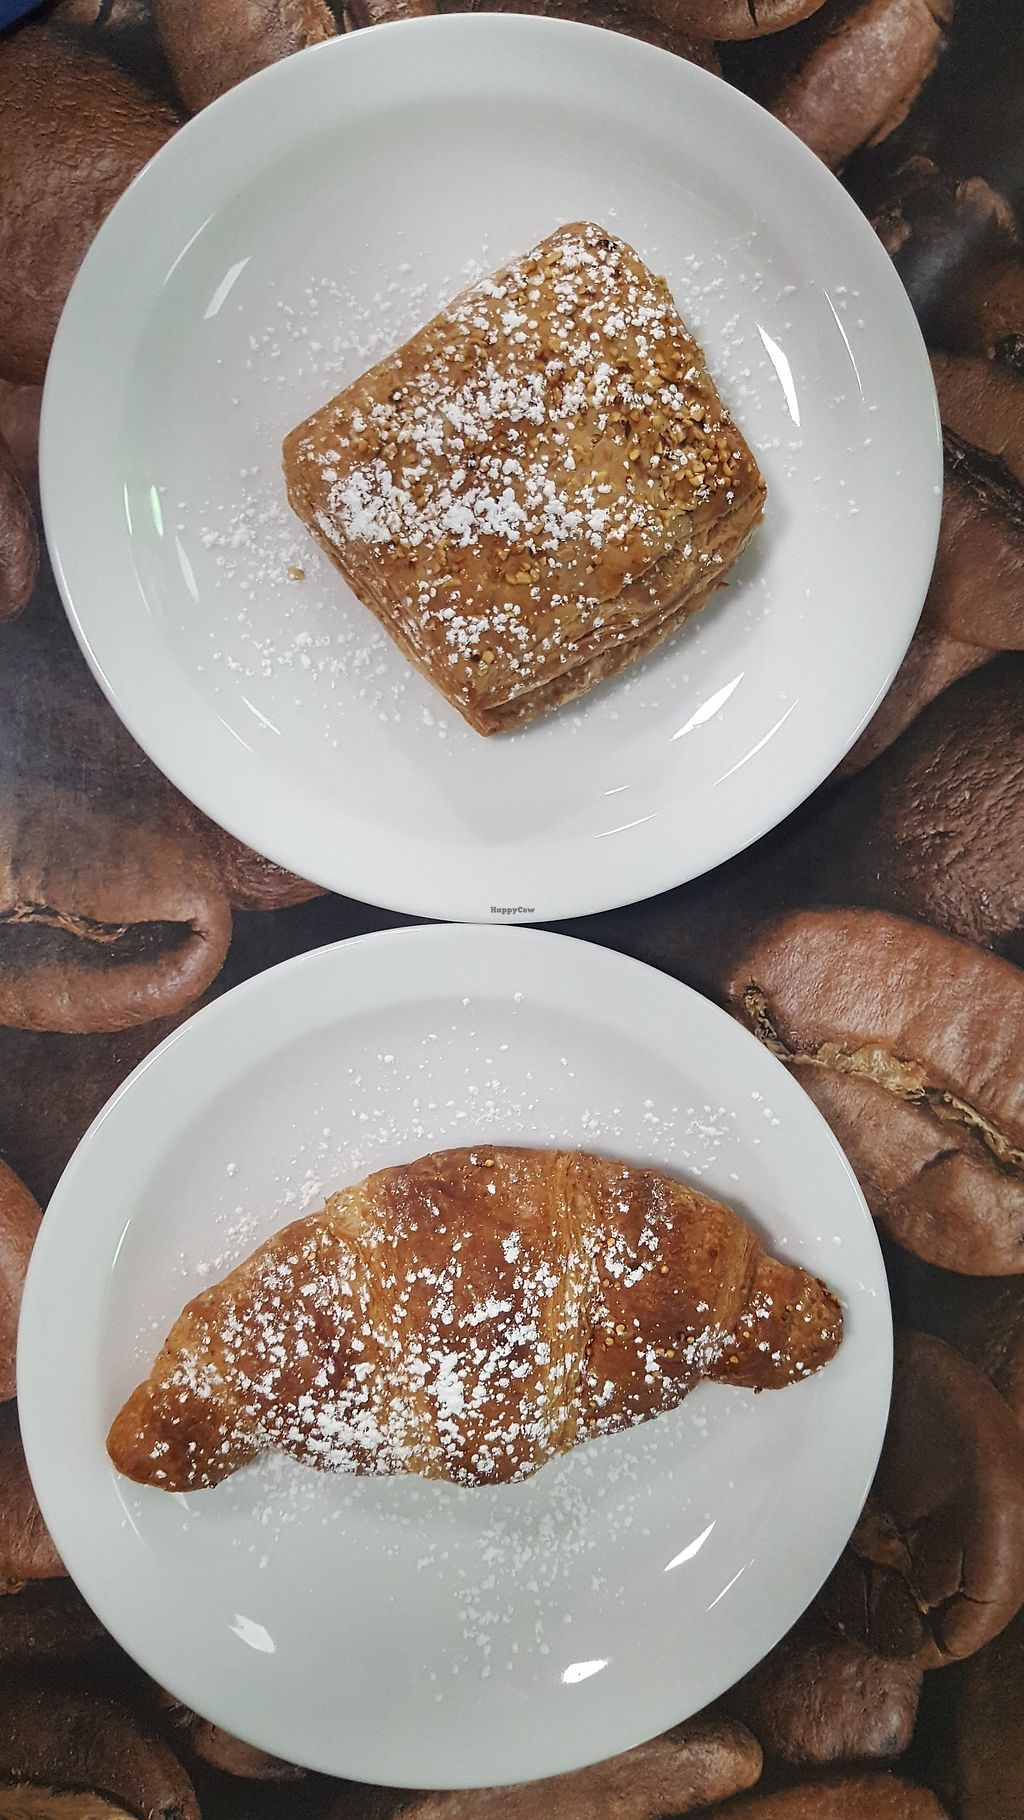 """Photo of Vesuvius Cafe  by <a href=""""/members/profile/VeganAnnaS"""">VeganAnnaS</a> <br/>Vegan pastries <br/> April 15, 2018  - <a href='/contact/abuse/image/110754/386475'>Report</a>"""